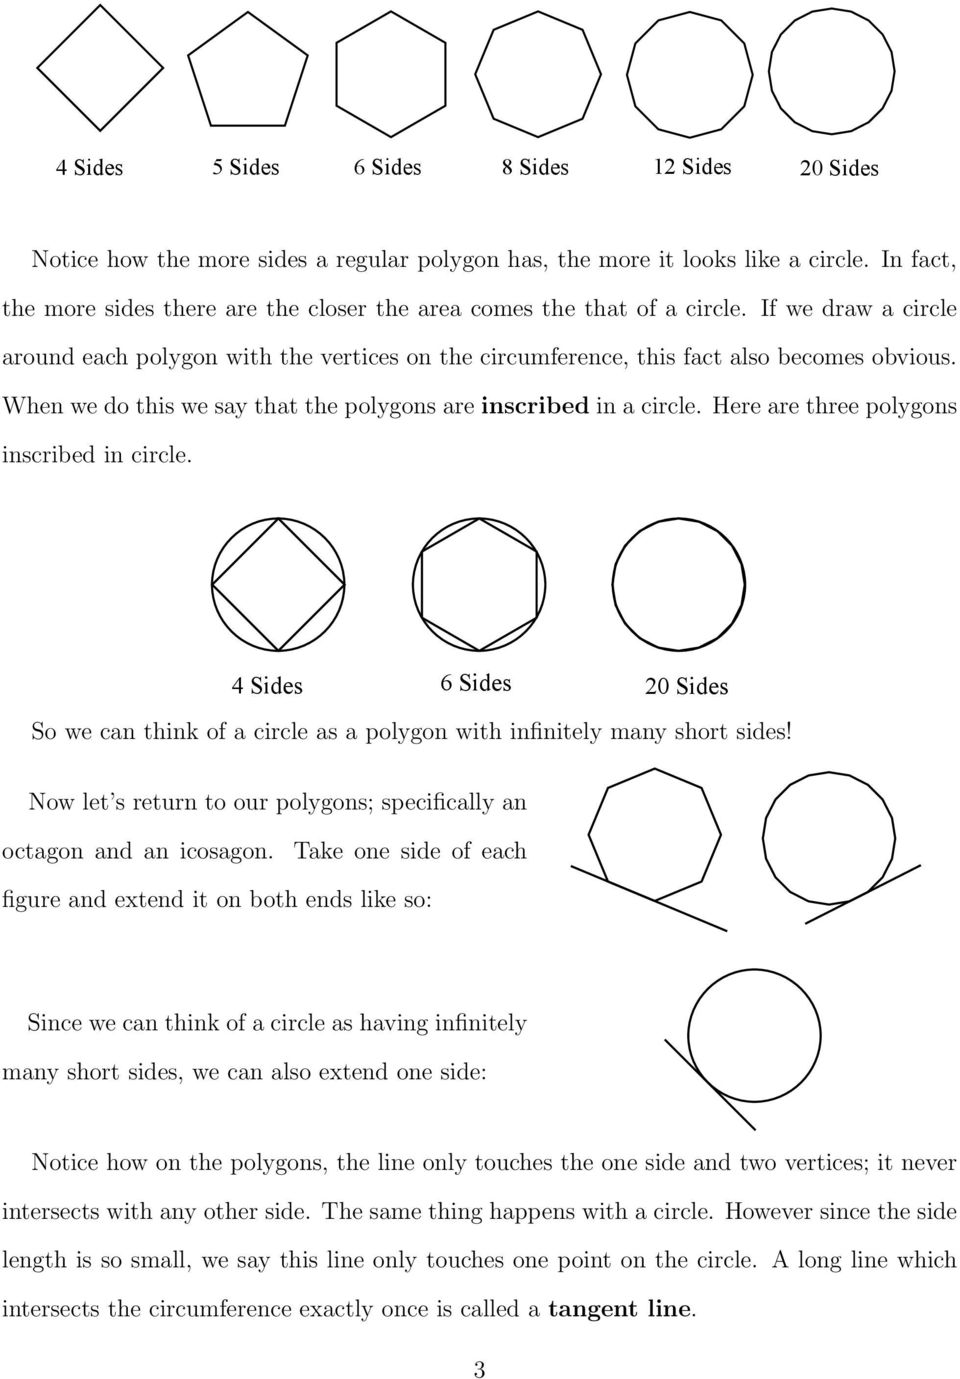 When we do this we say that the polygons are inscribed in a circle. Here are three polygons inscribed in circle.